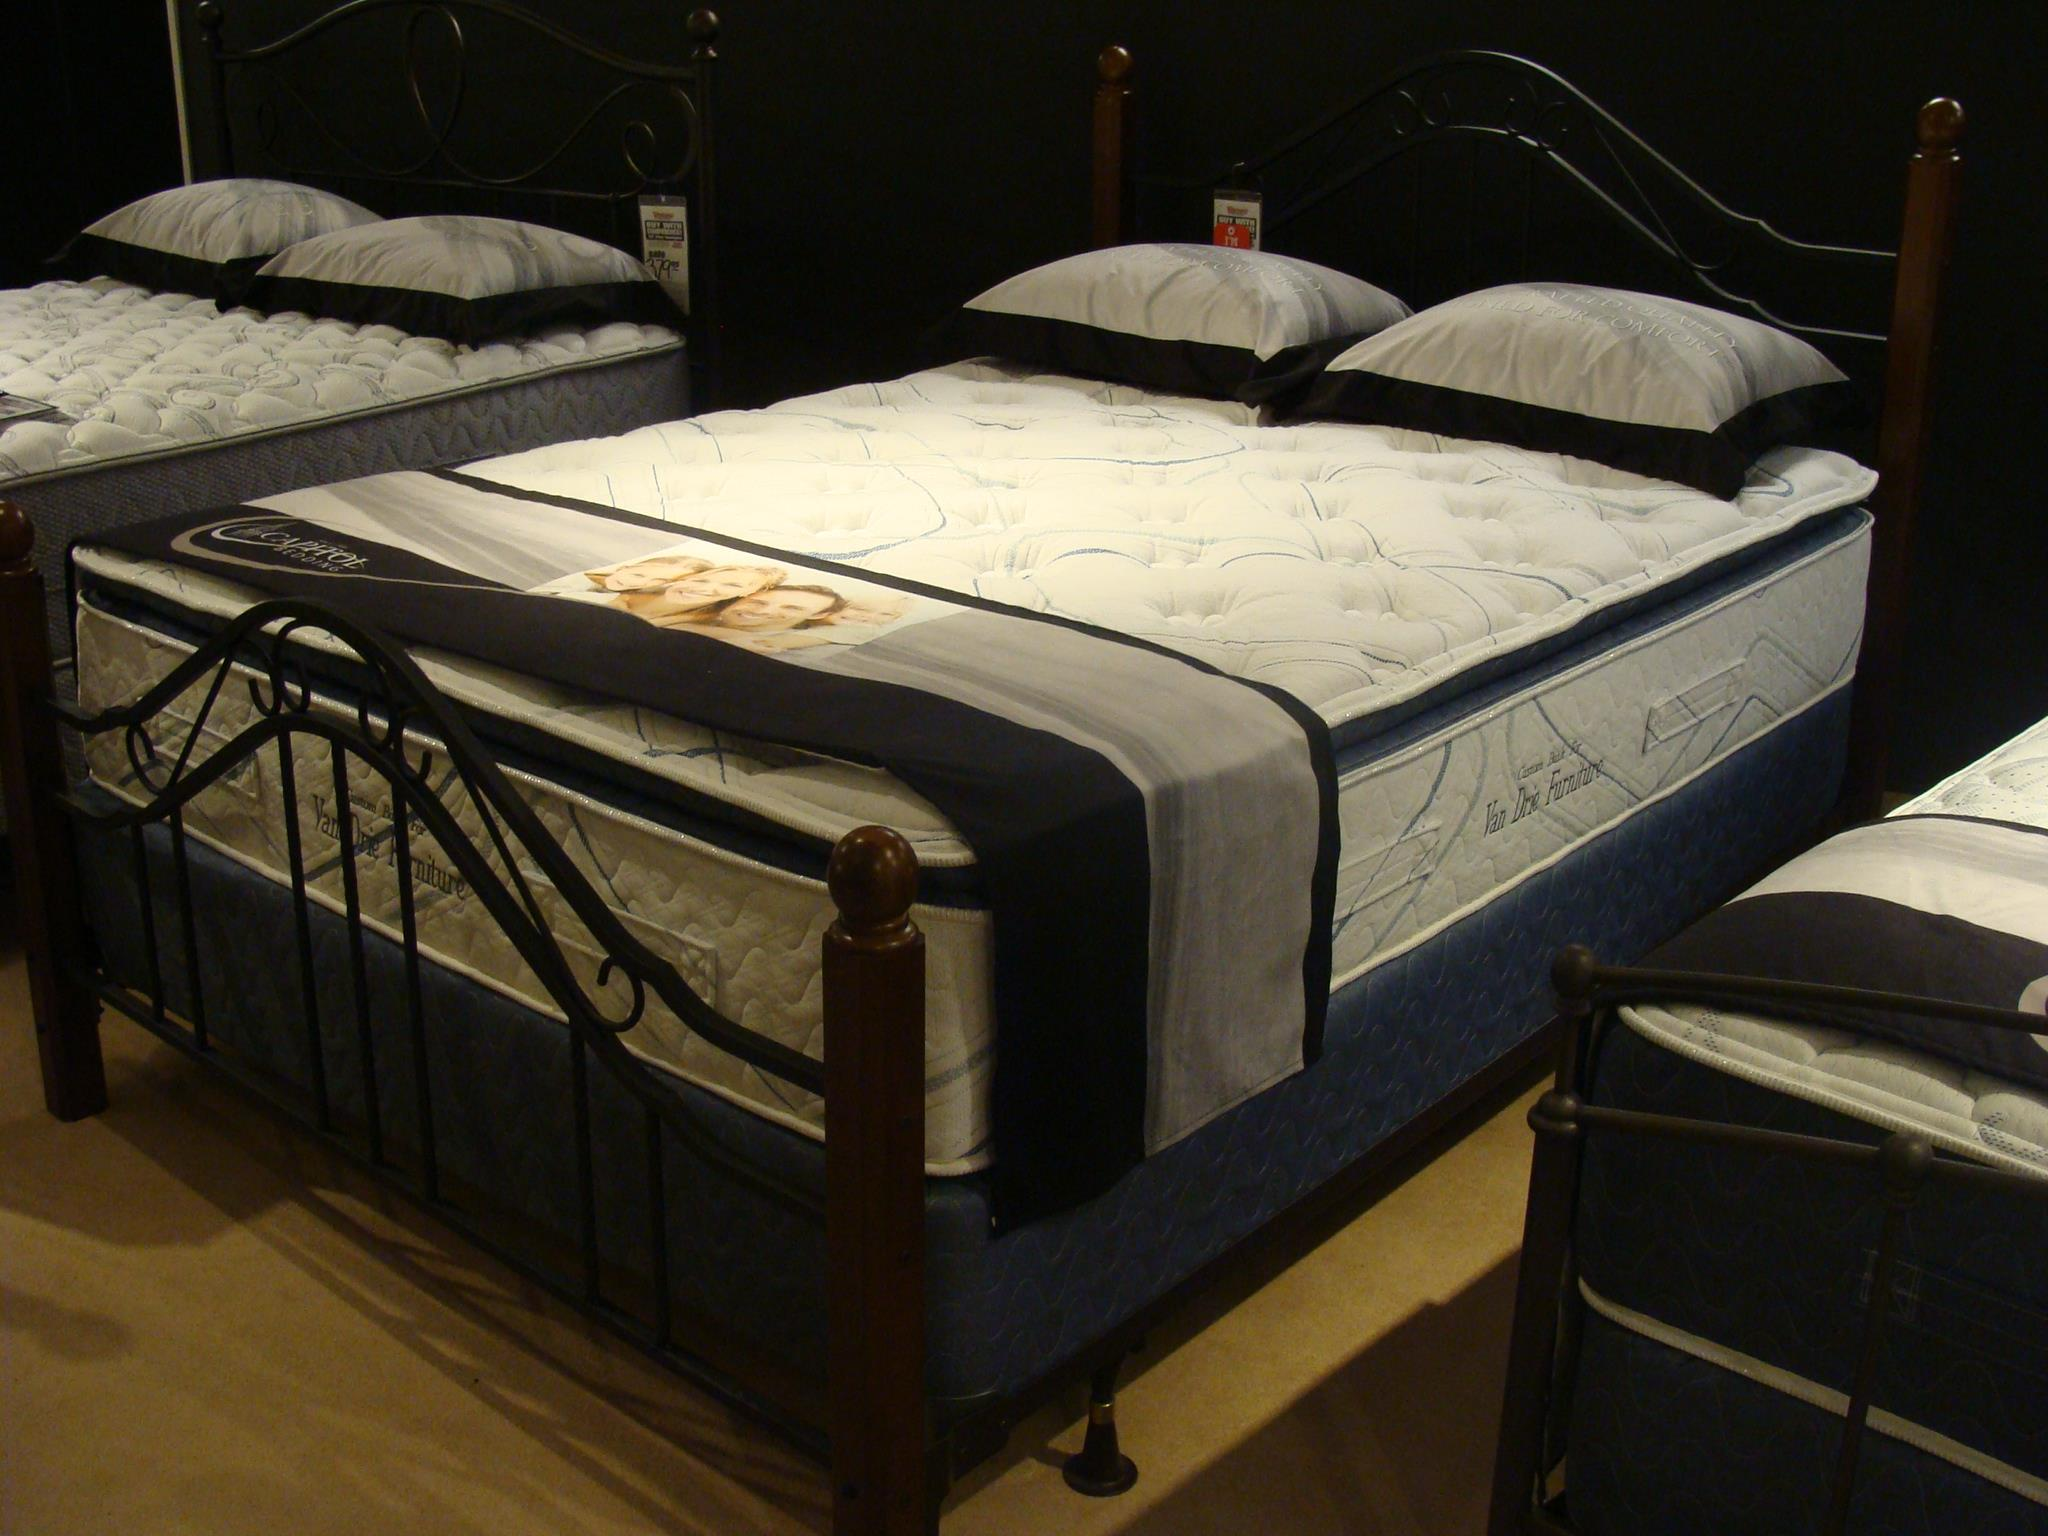 mattress dust mite bed encasement bug sherwood protektion